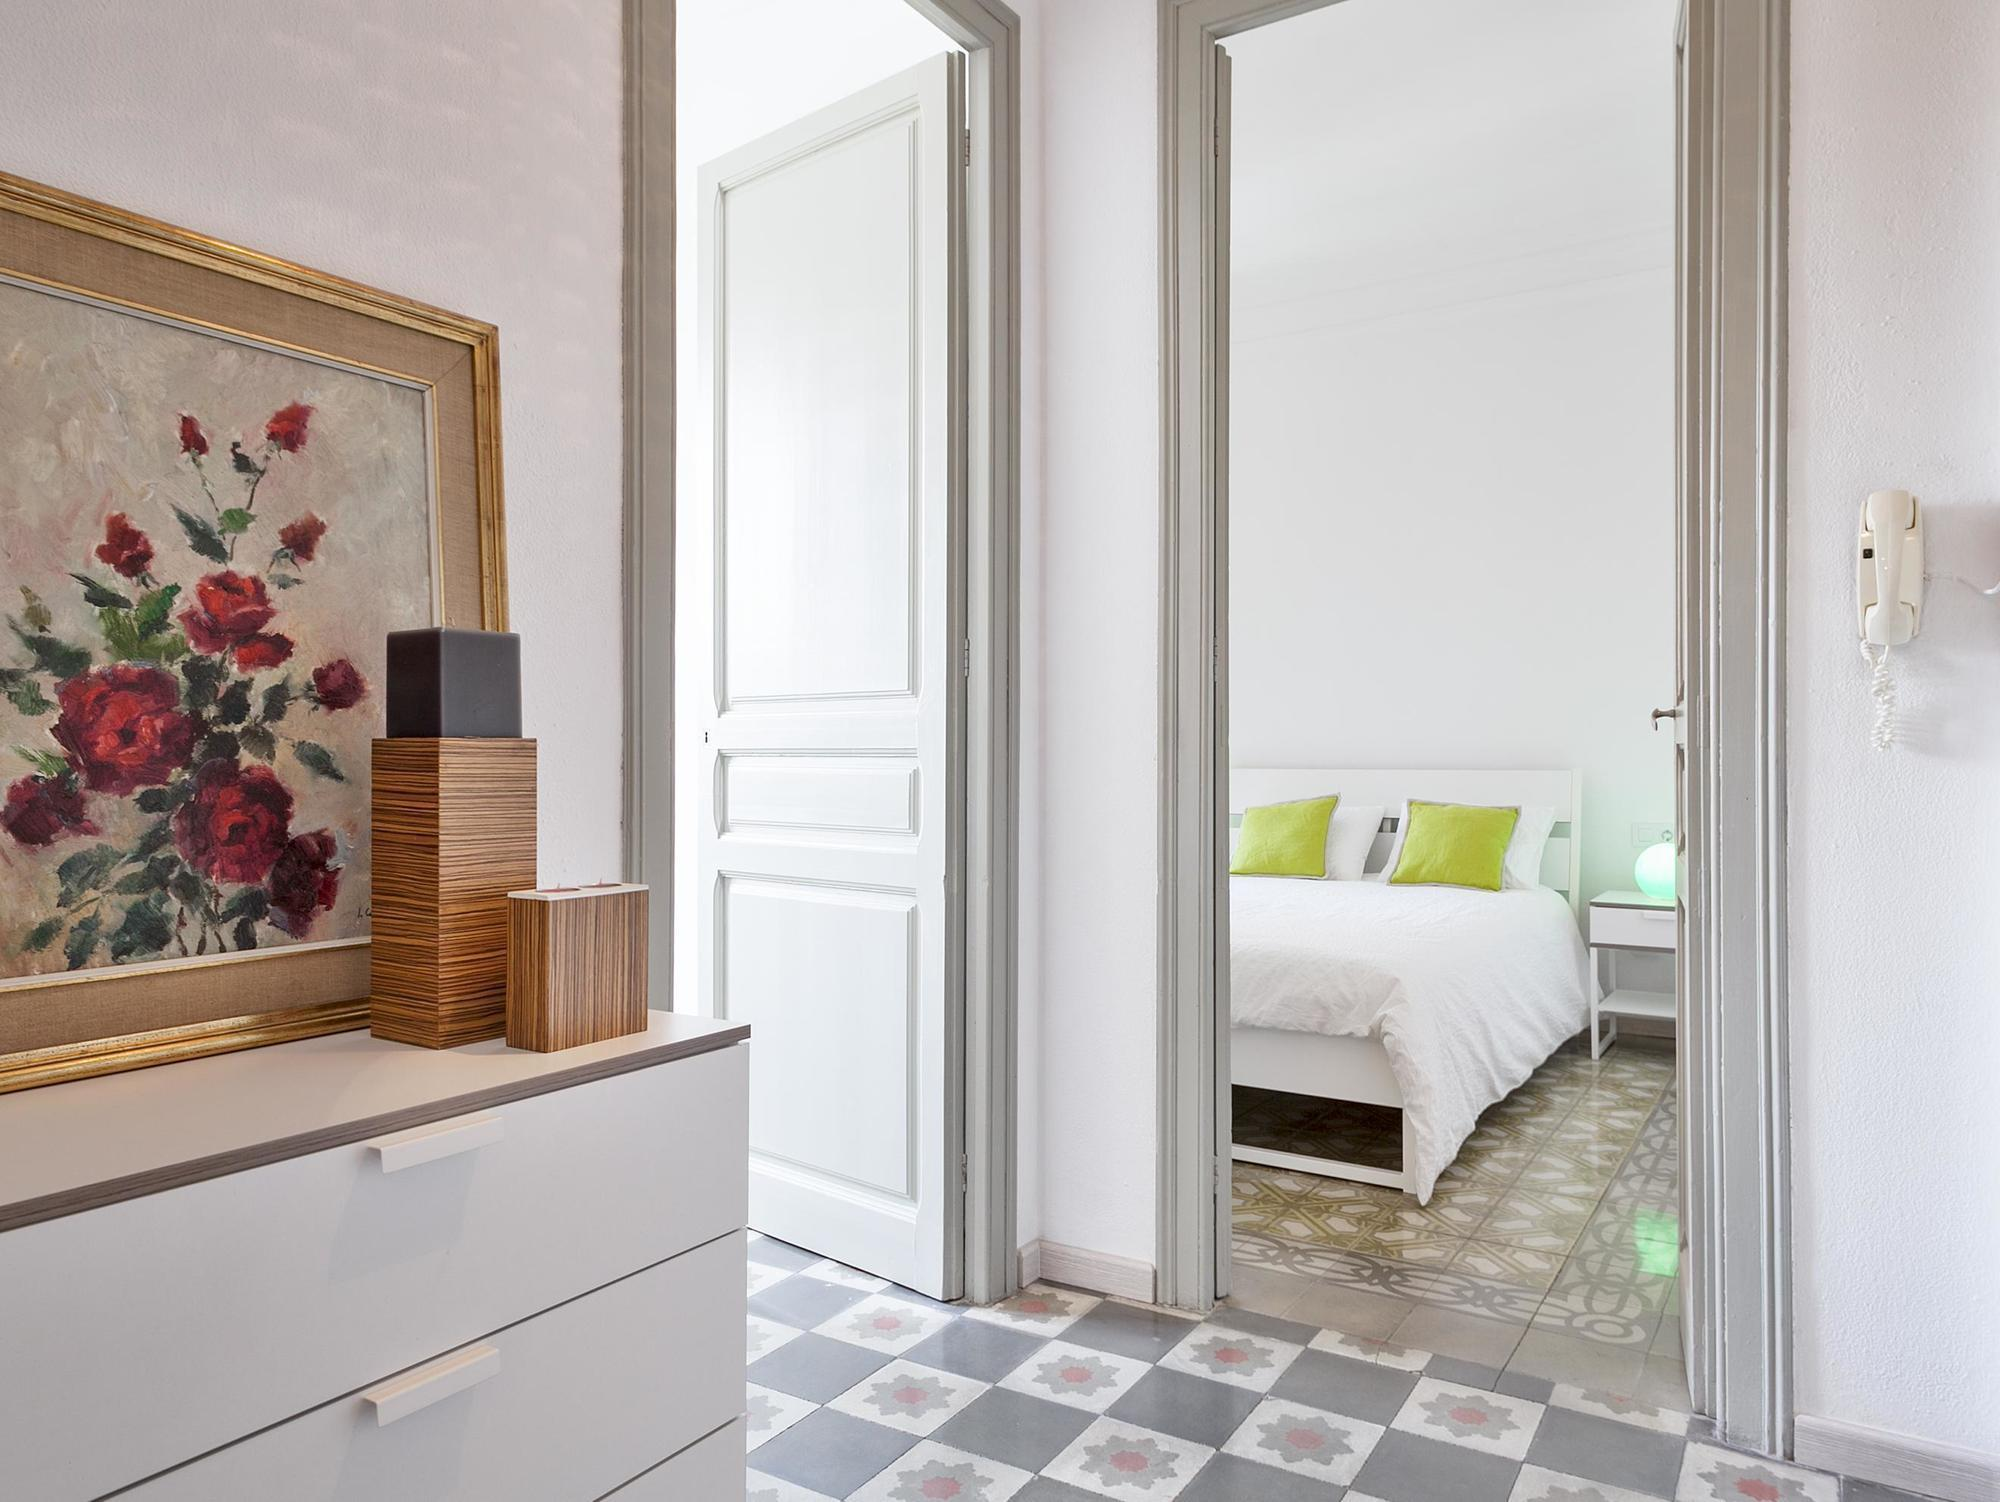 The Suites Barcelona Hotel